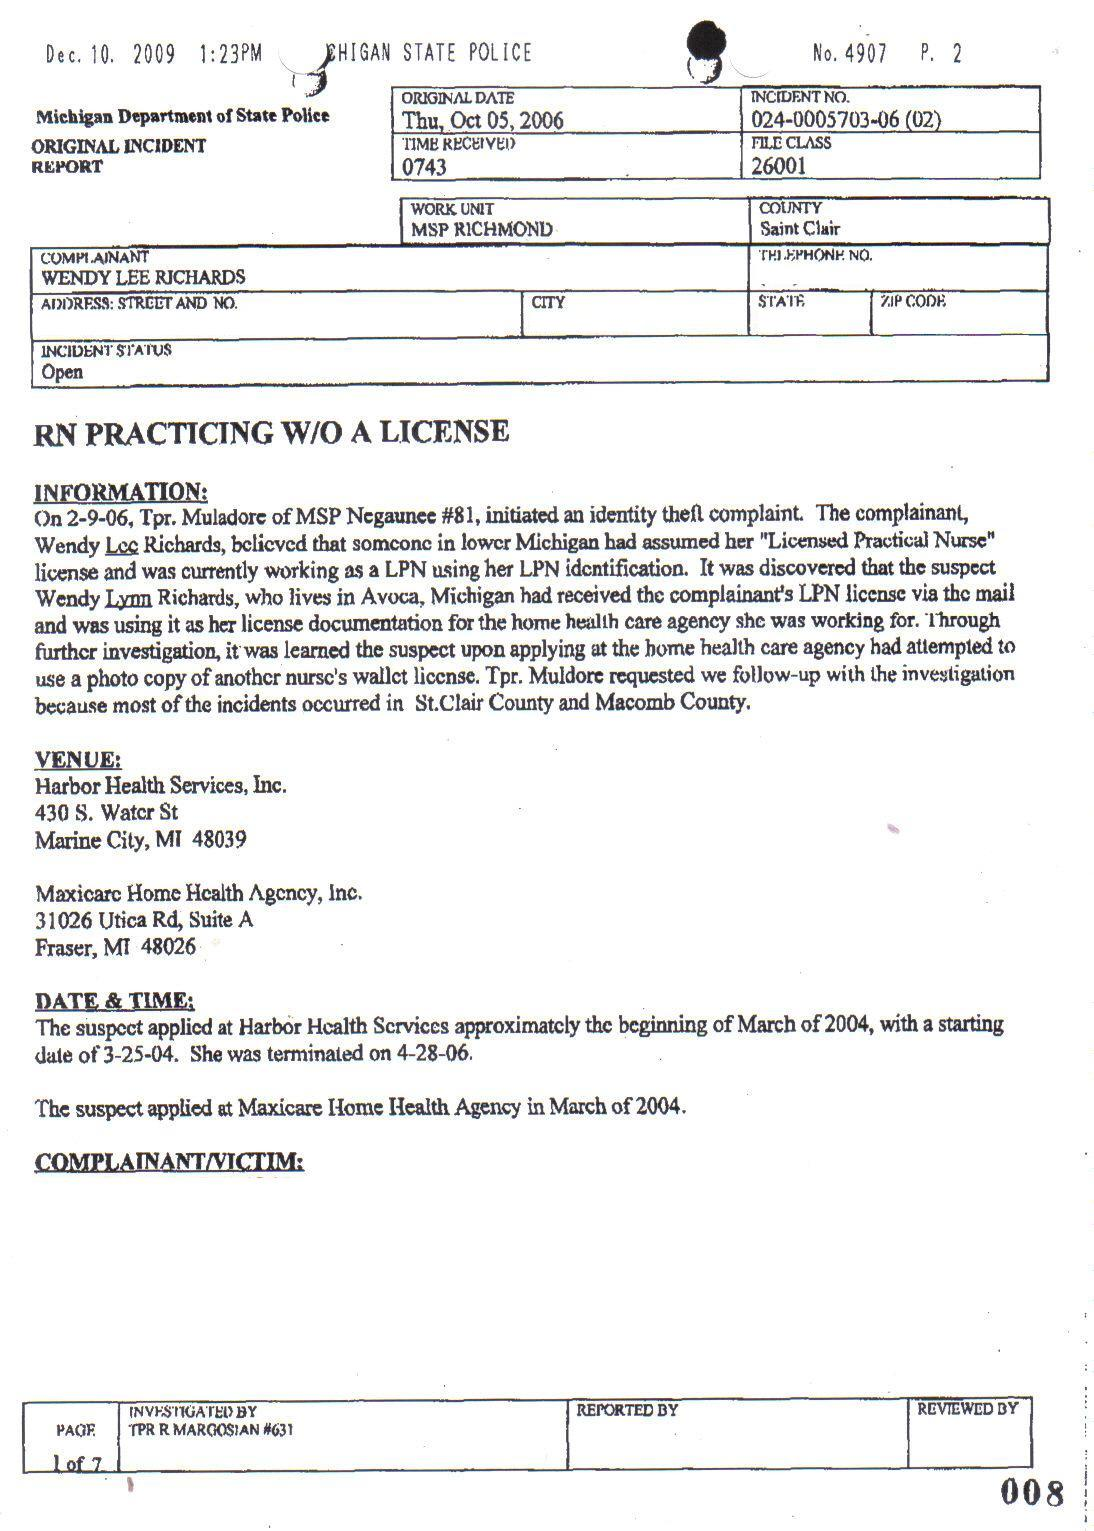 Physical Education report writing format for high school students